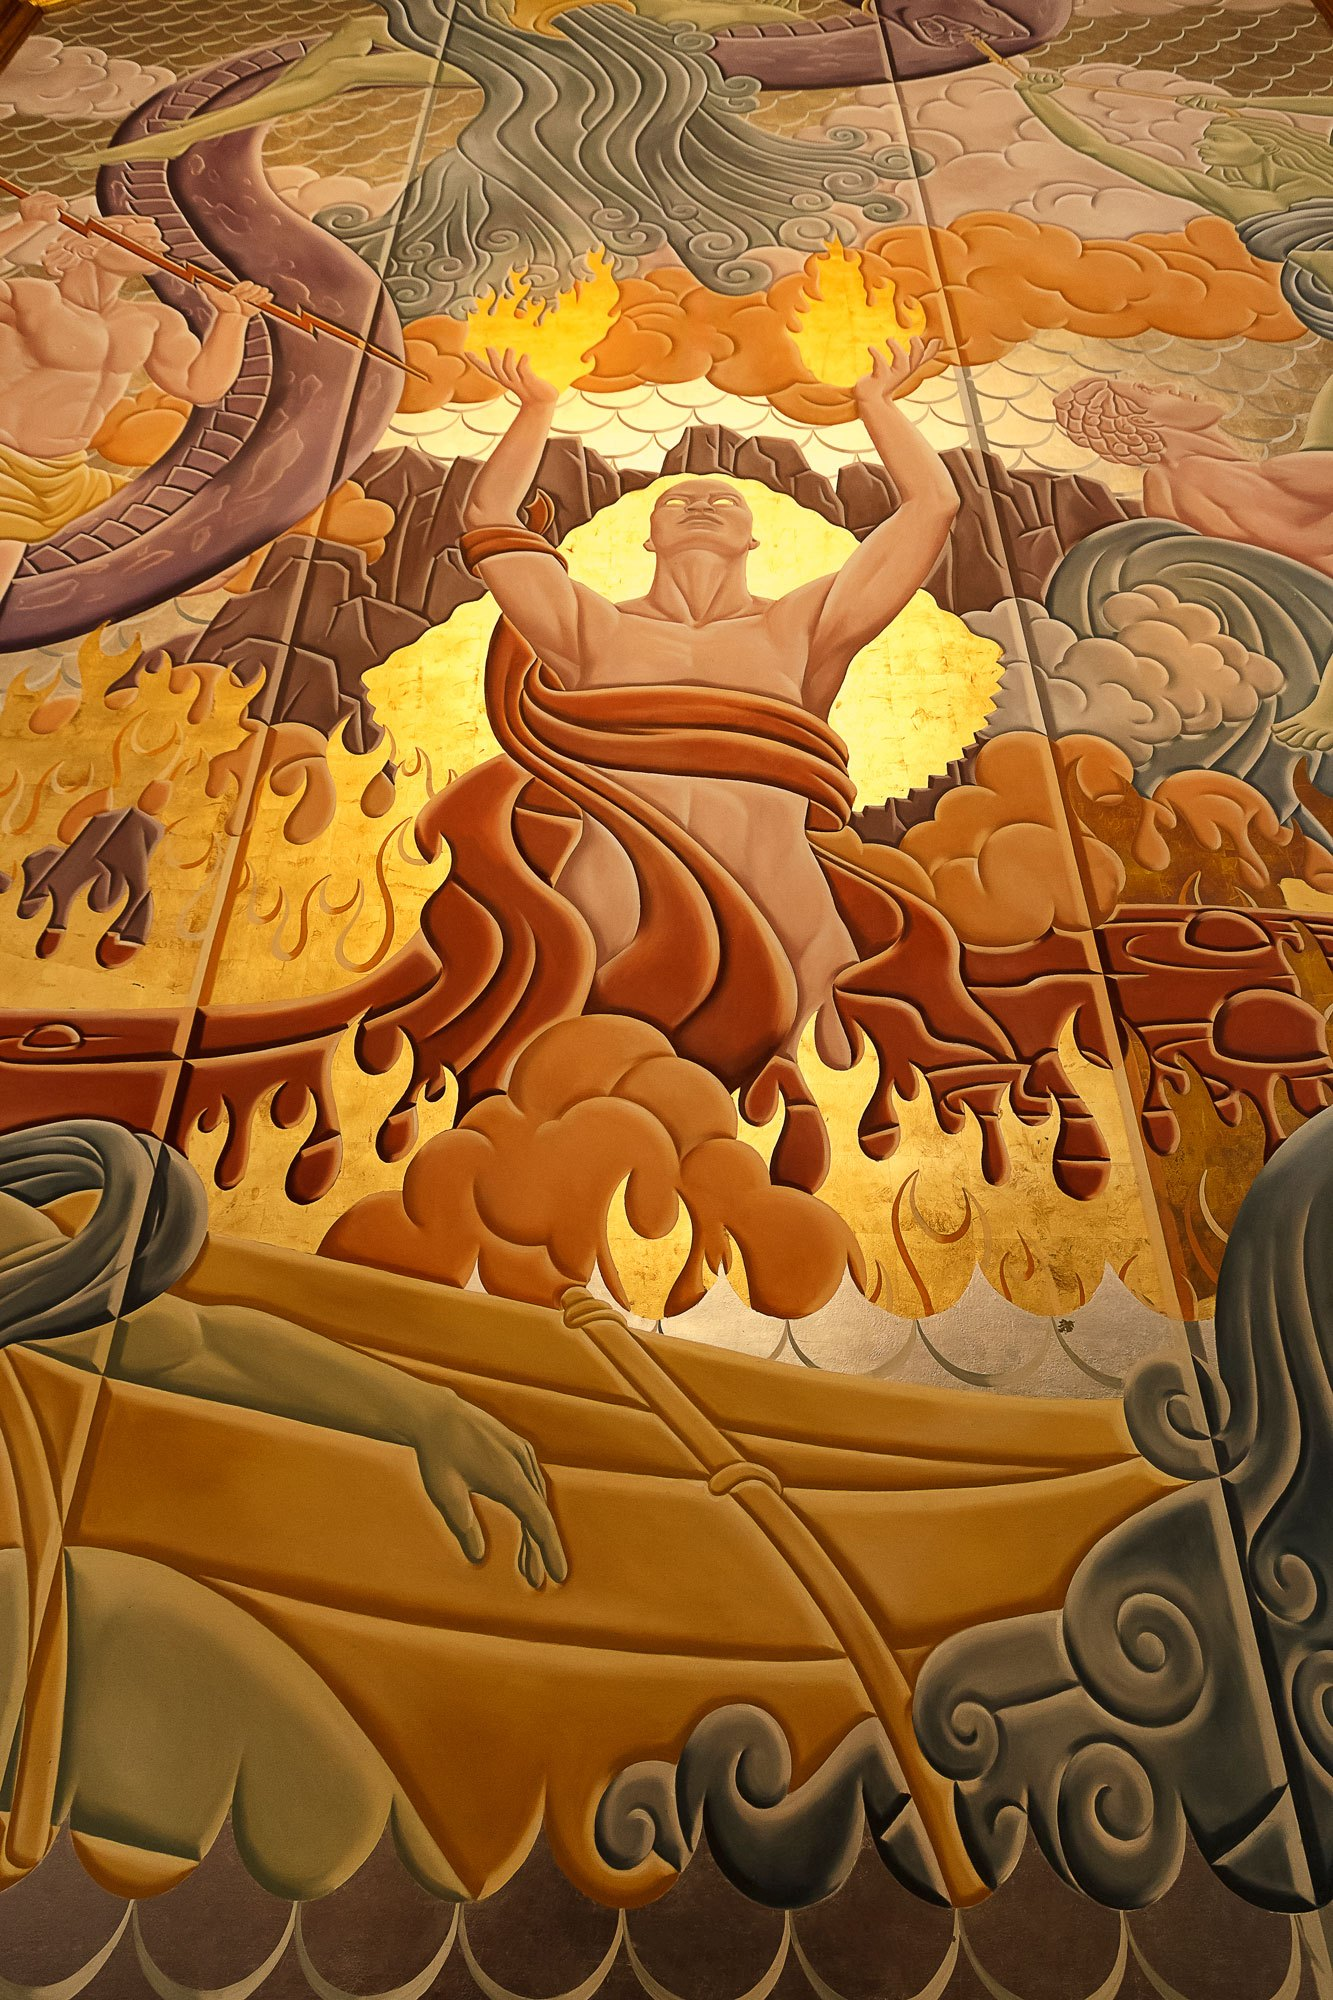 THE GOLDEN WALL MURAL IS MADAME PELE BY EVANS AND BROWN. IT DEPICTS THE BATTLE BETWEEN FIRE AND WATER